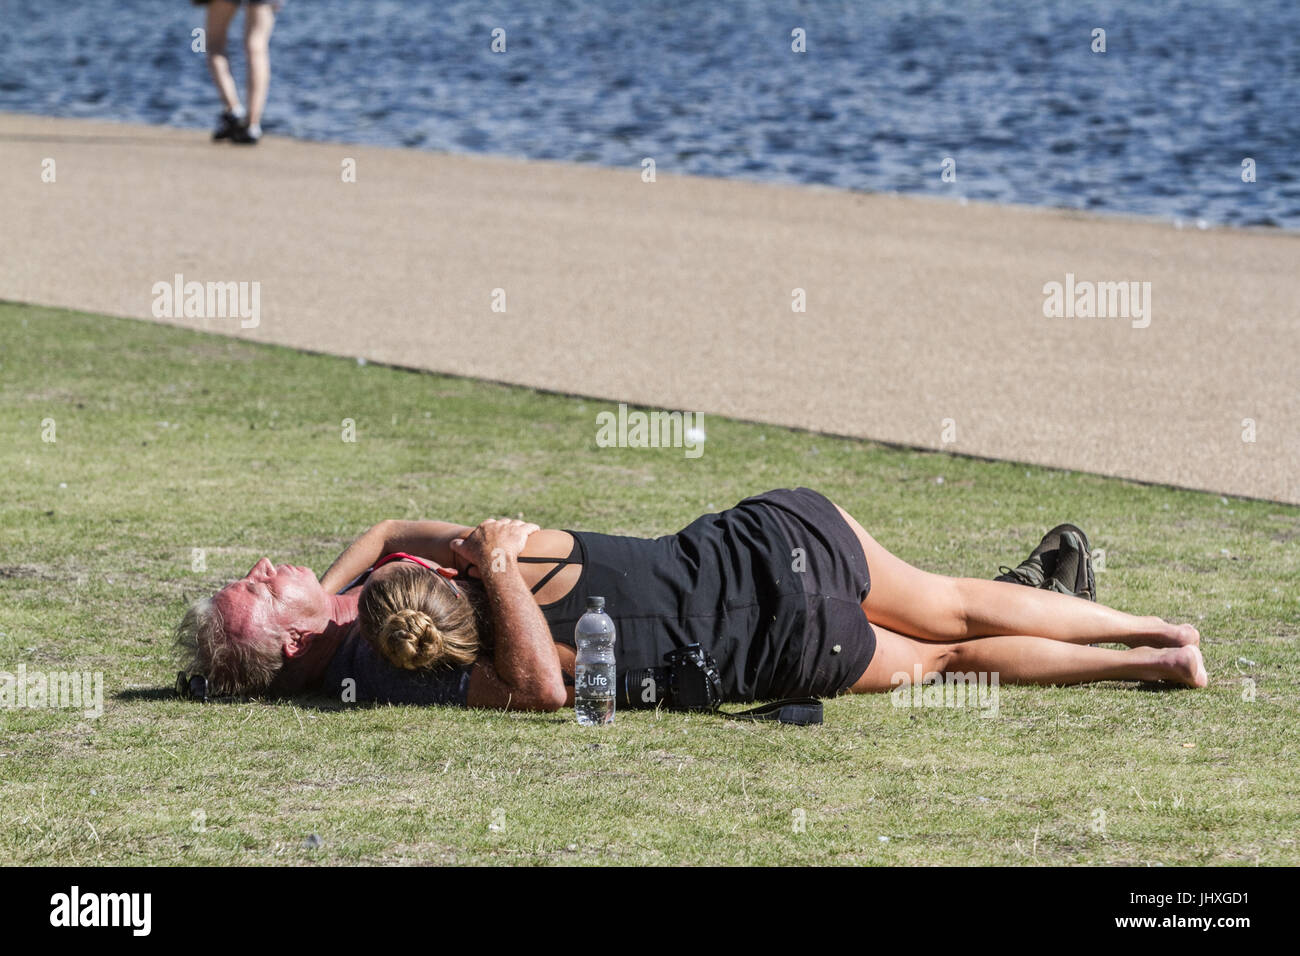 London, UK. 17th July, 2017. People enjoy the morning sunshine and hot weather in Kensington Gardens as temperatures - Stock Image